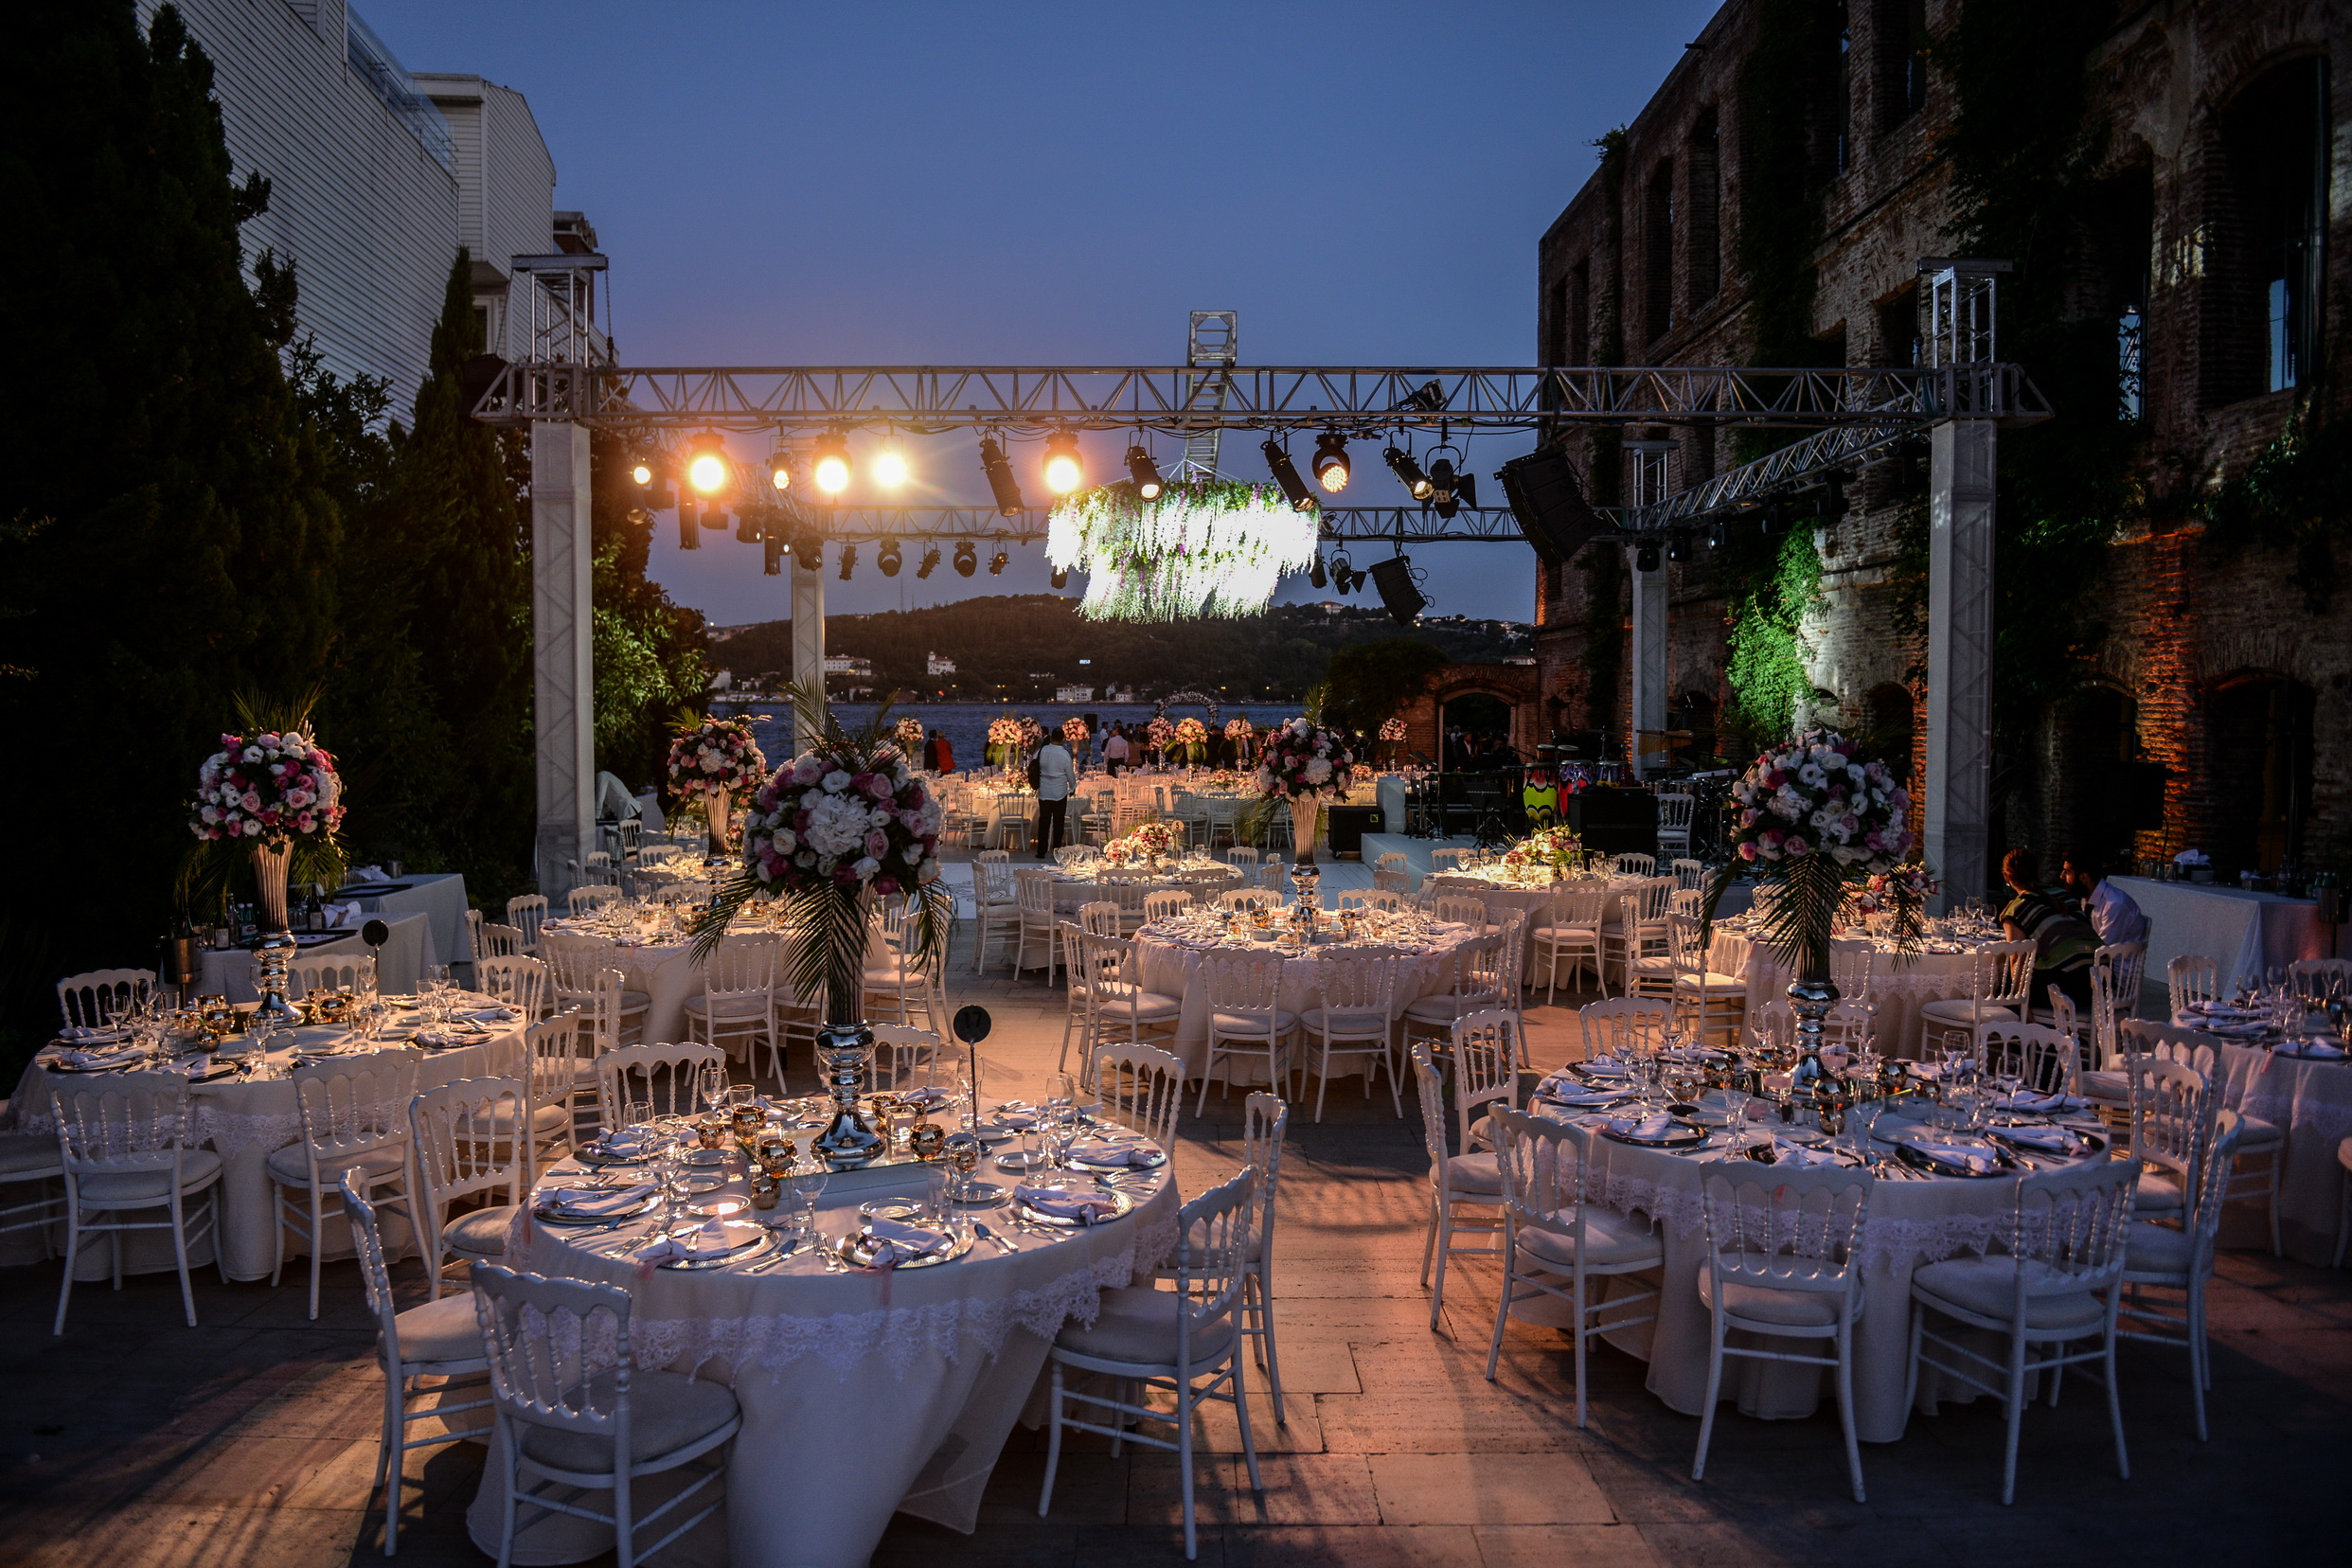 ESMA SULTAN MANSION İSTANBUL İNDİAN WEDDİNG